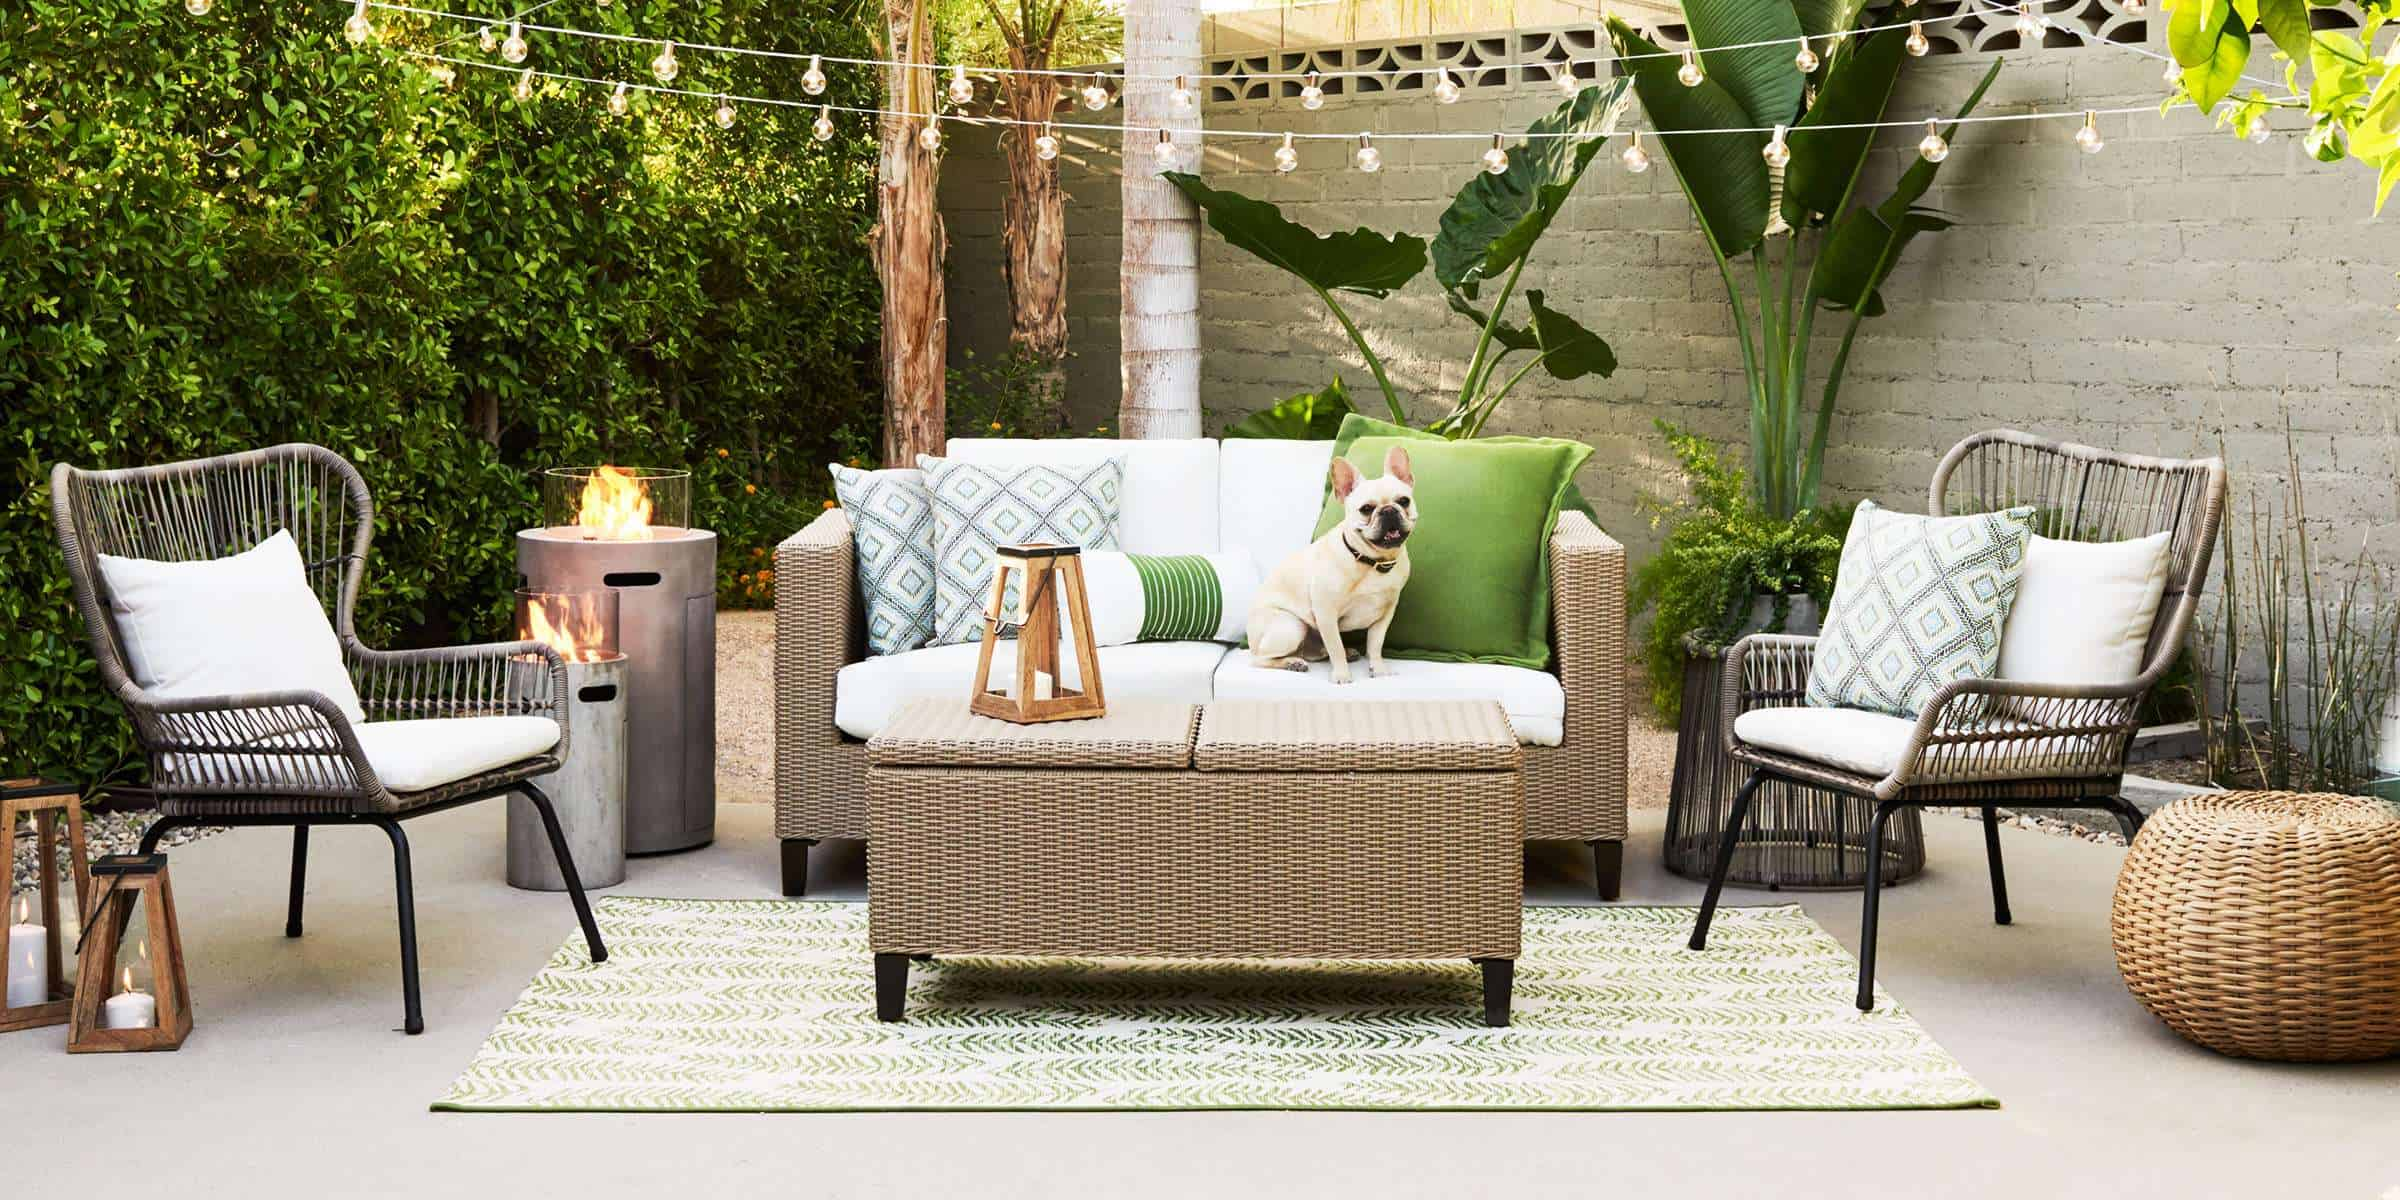 Accent pillows to decorate the outdoor area